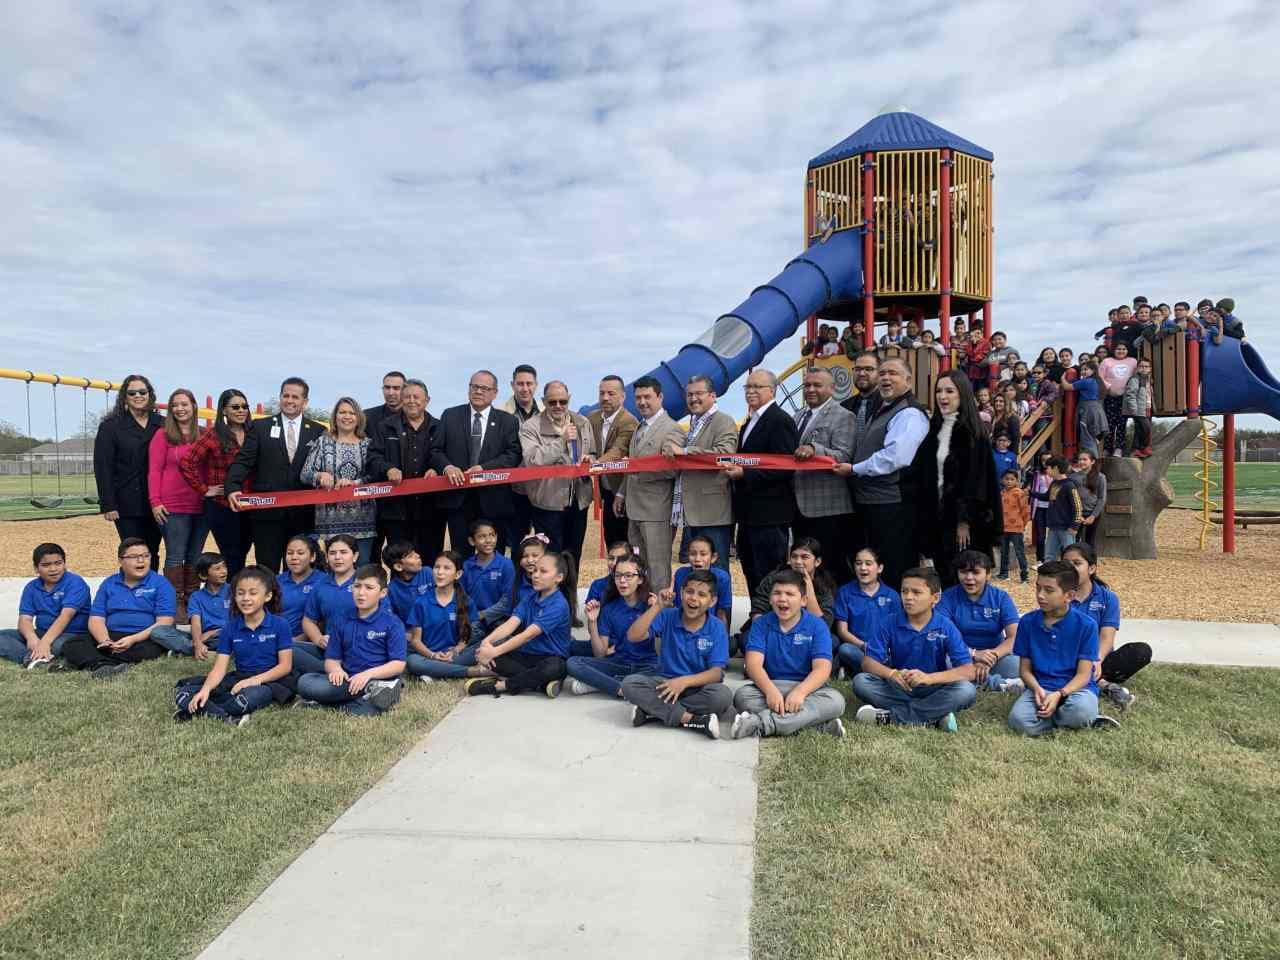 Ribbon Cutting for the Dr. Long Park in Pharr